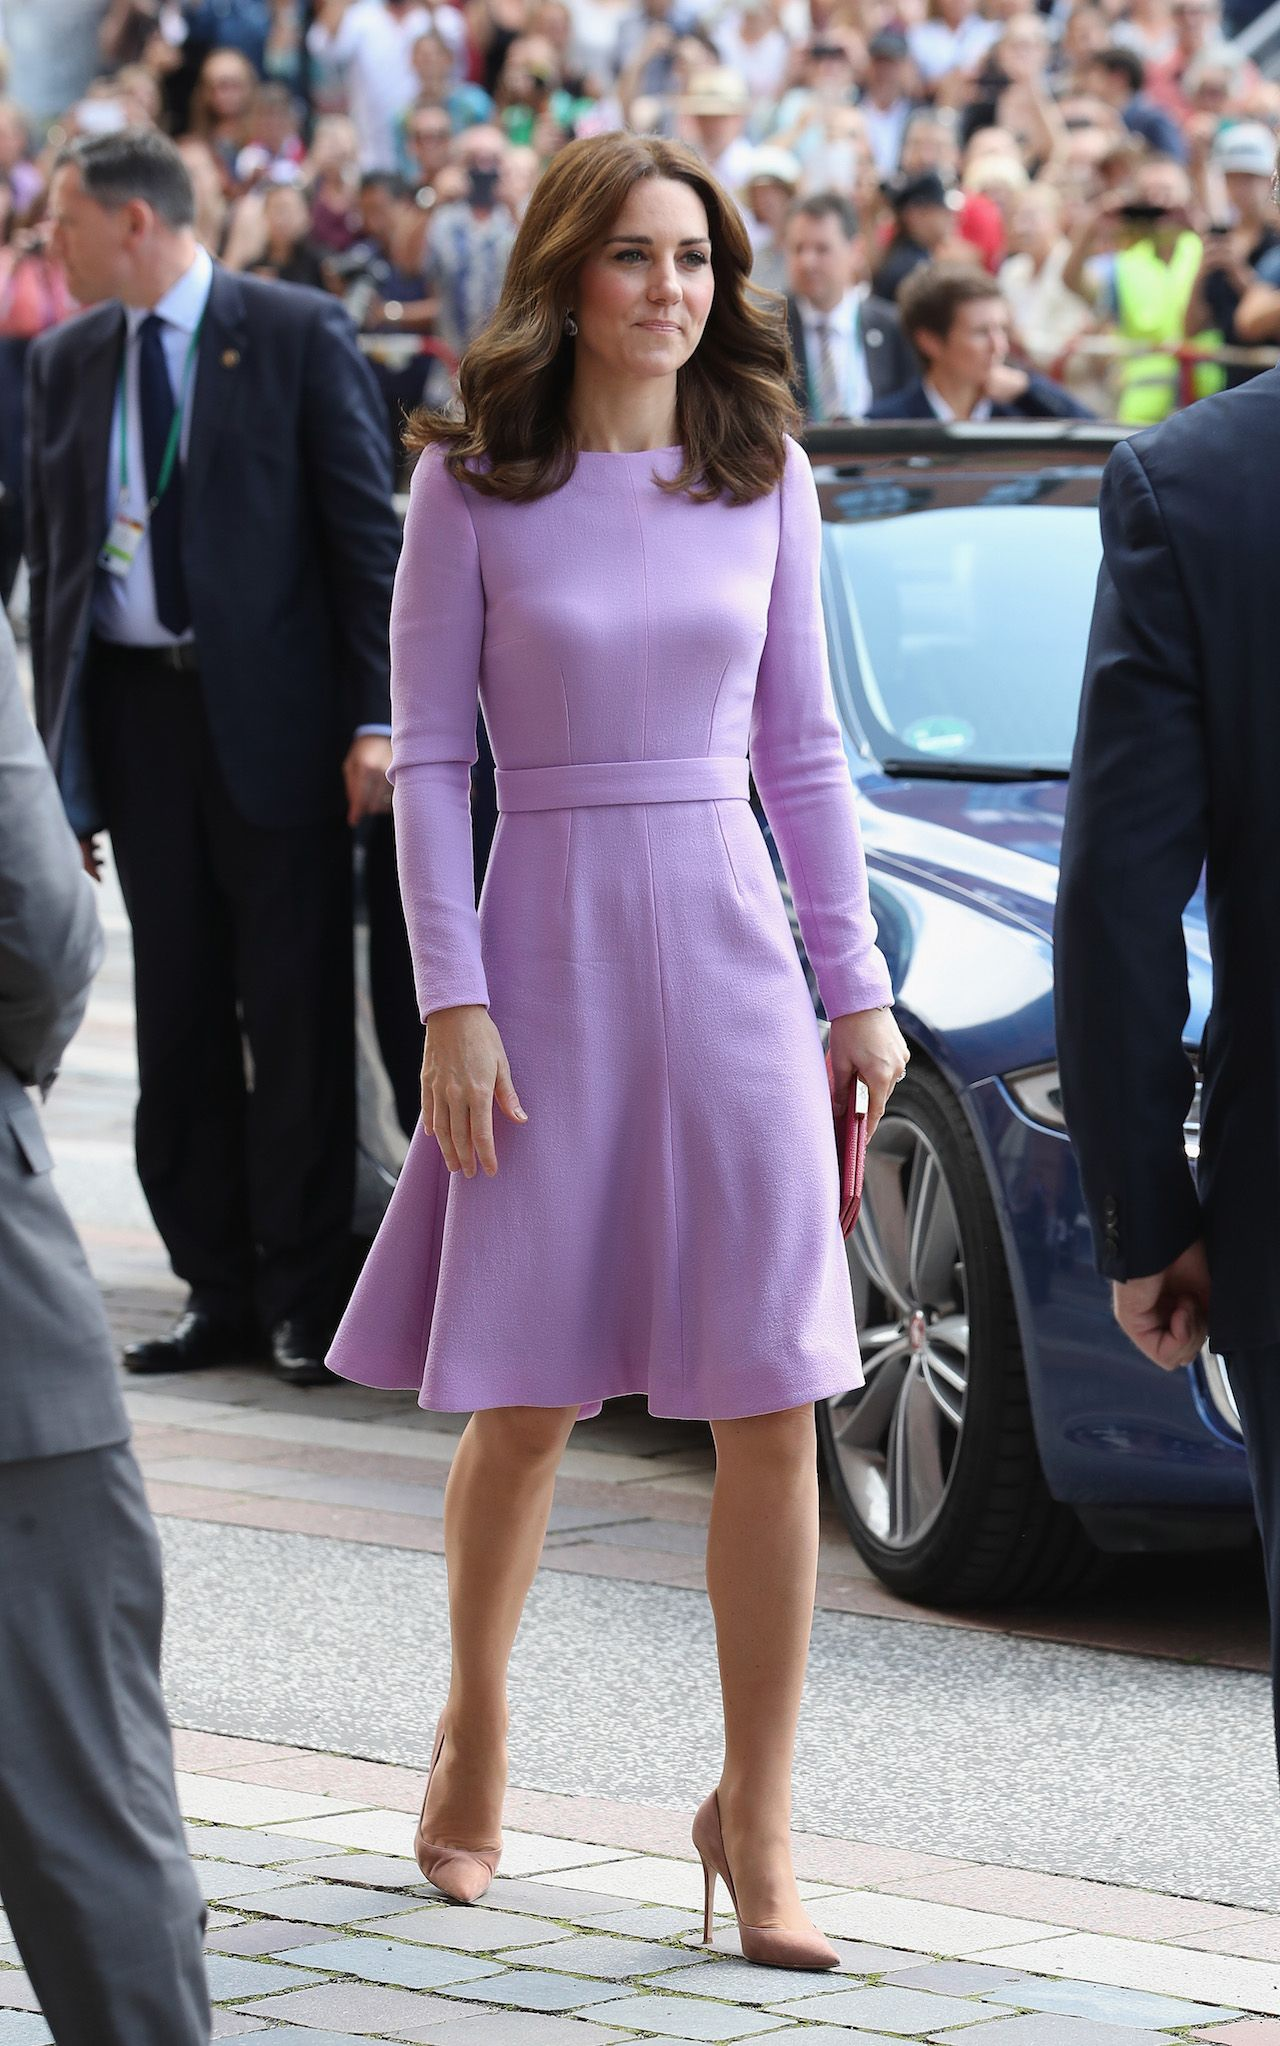 Kate Middleton Is the Epitome of Perfection in Pretty Purple Dress ...